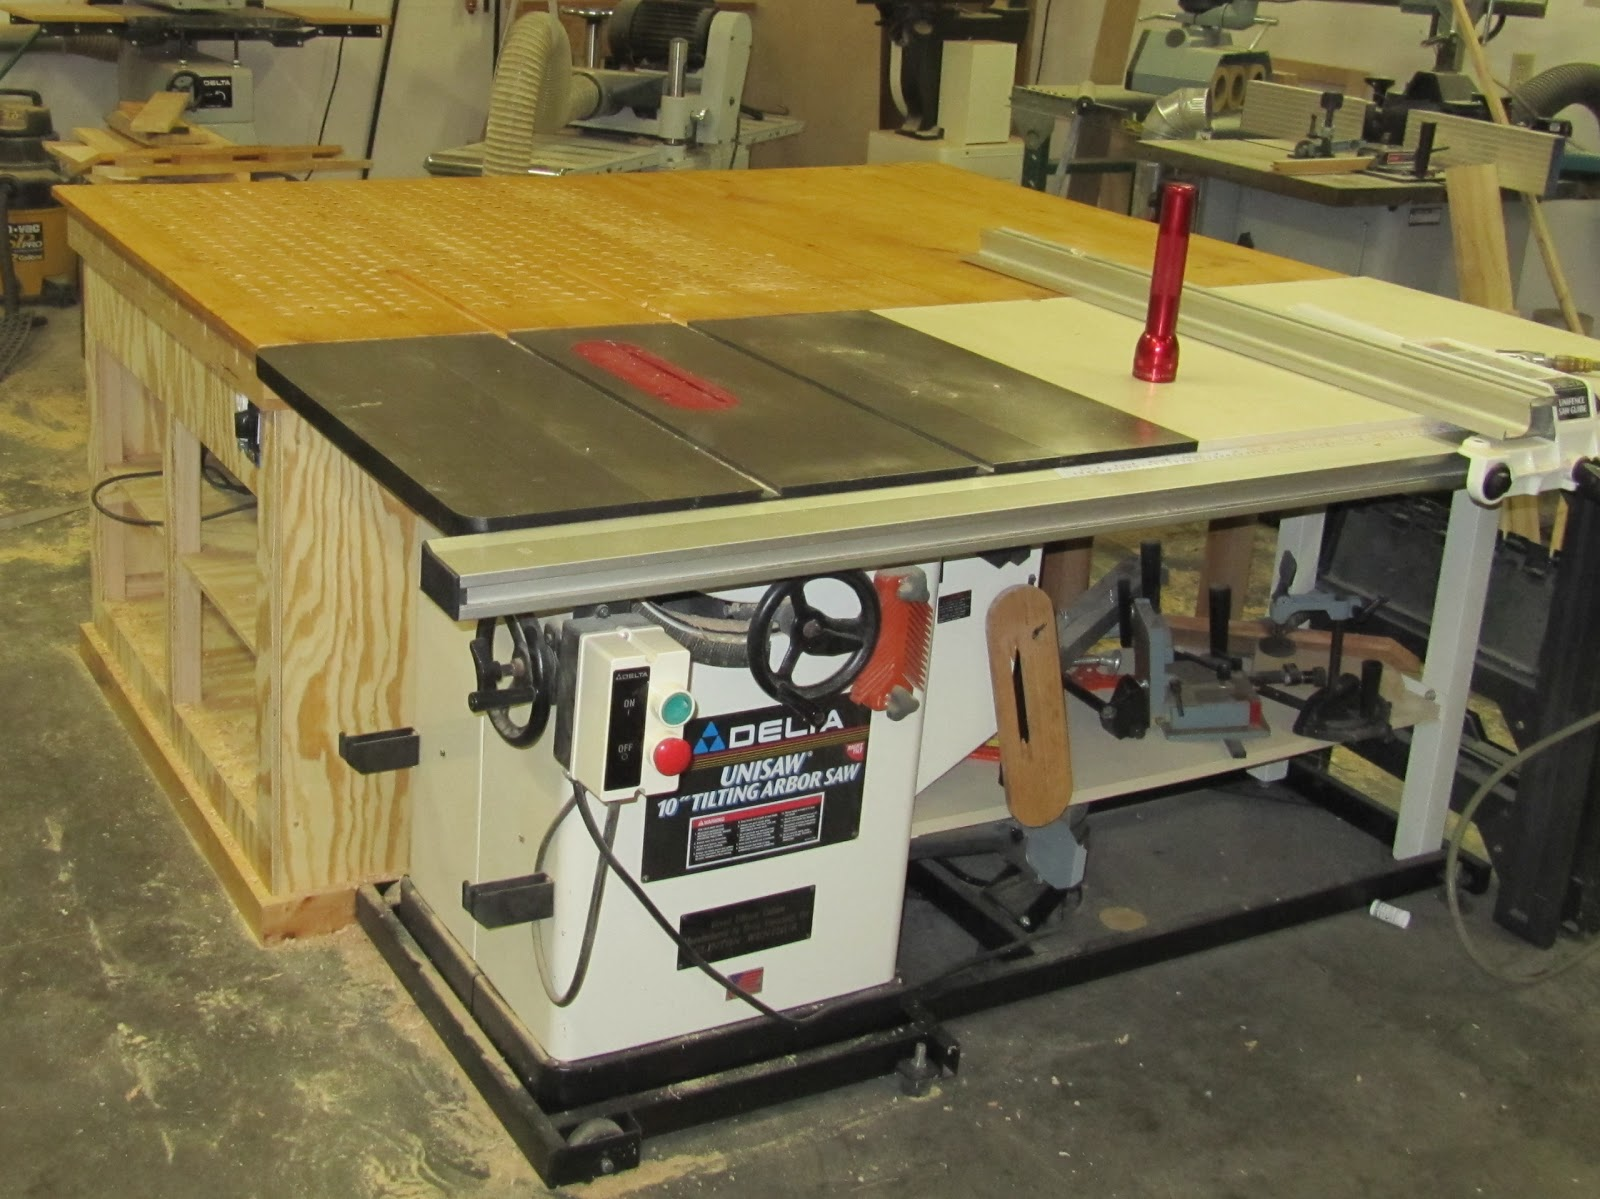 wenthur's woodworking blog: downdraft table